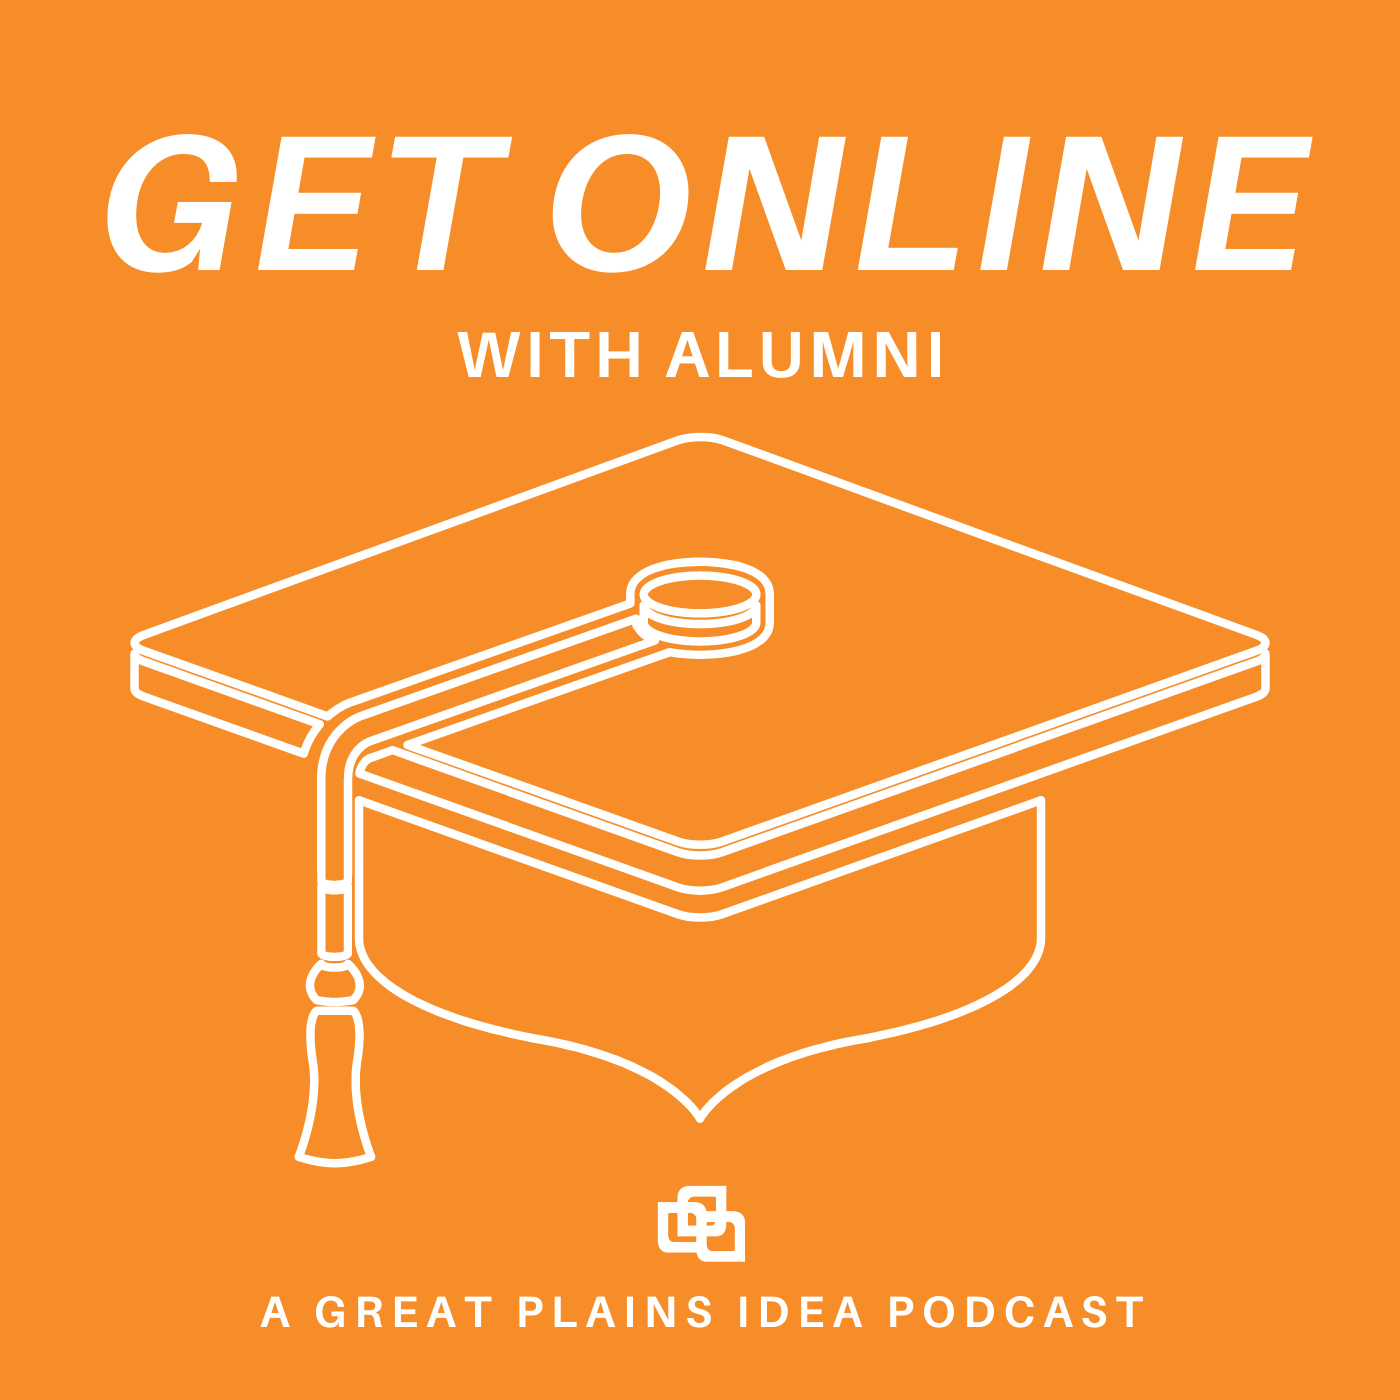 Episode 4: Get Online with Alumni